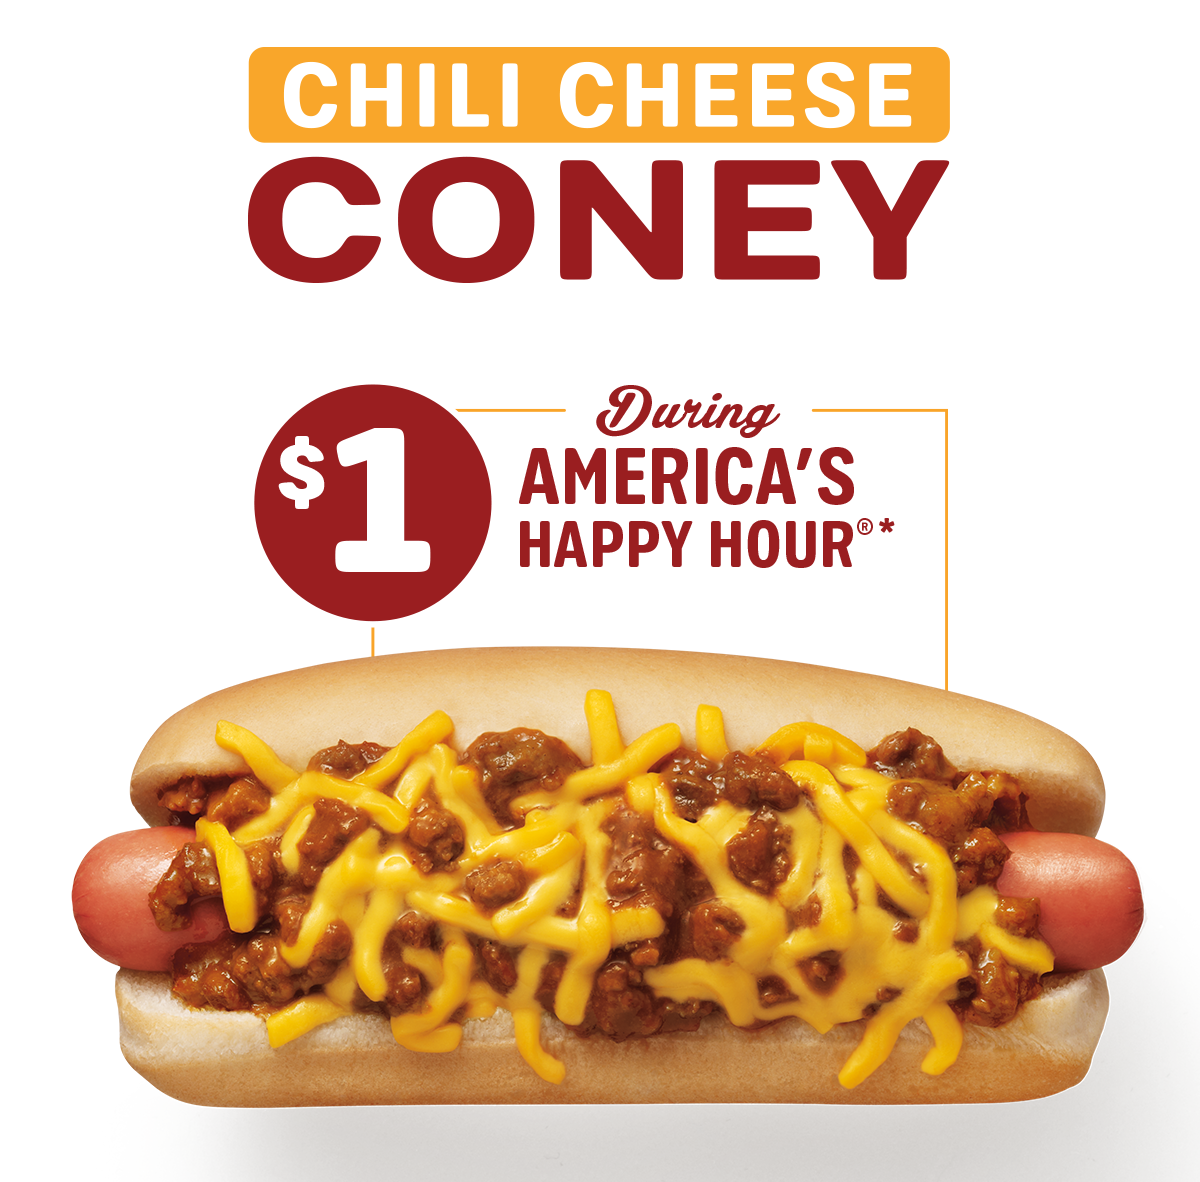 ... are offering $1 Chili Cheese Coney's during America's Happy Hour